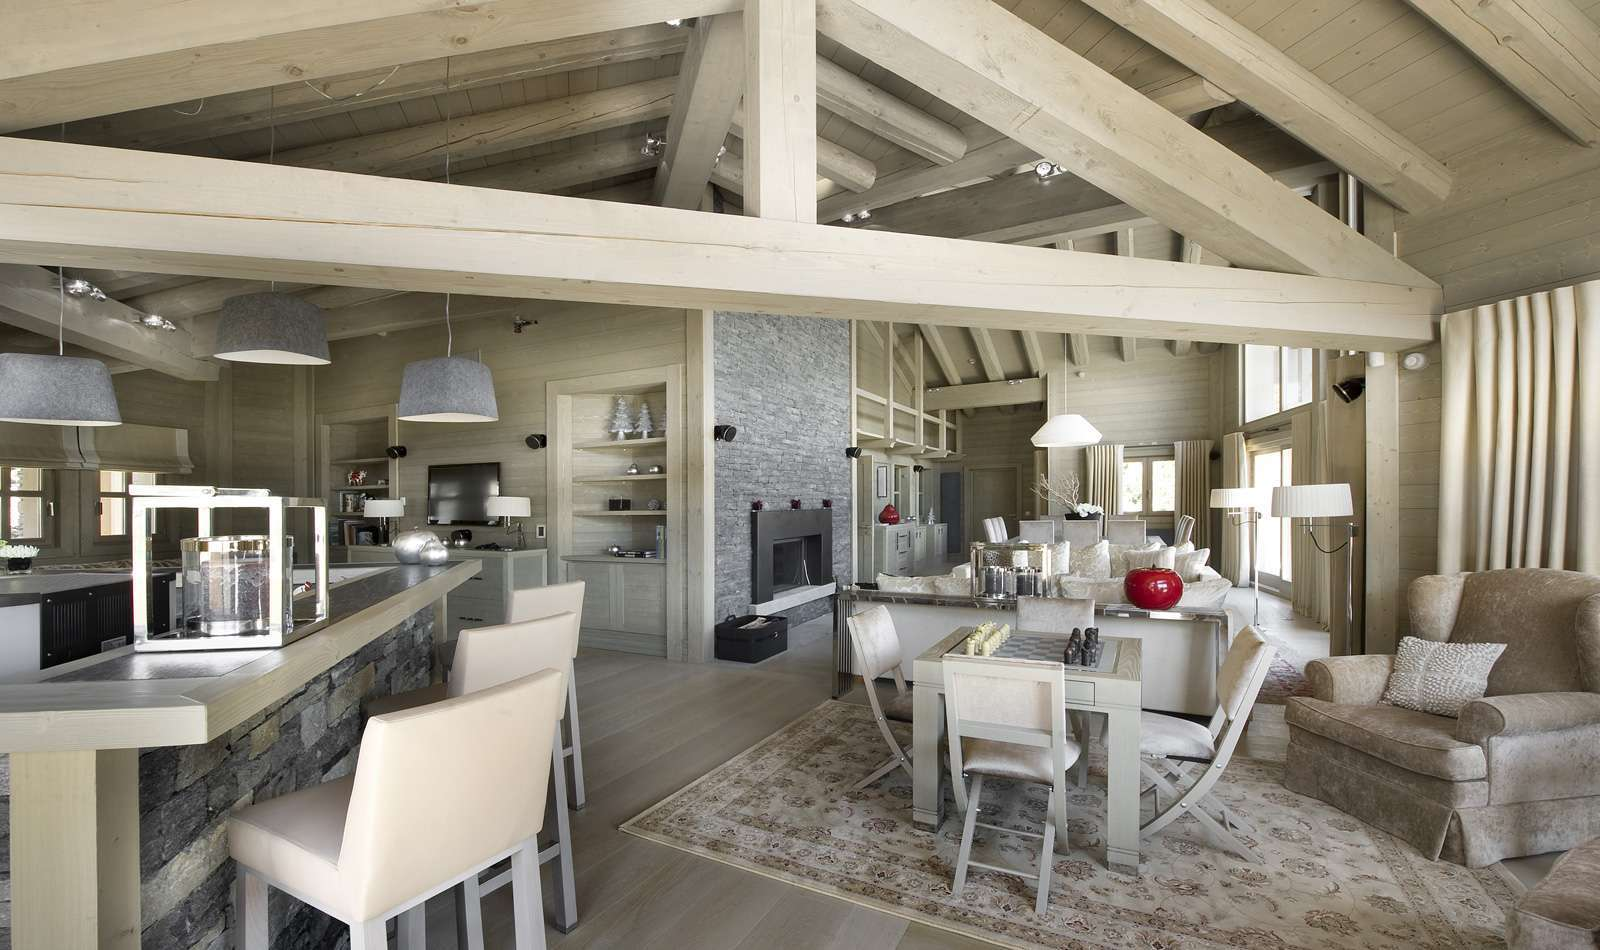 Kings-avenue-courchevel-hammam-swimming-pool-childfriendly-parking-cinema-boot-heaters-fireplace-ski-in-ski-out-lift-terrace-bar-library-area-courchevel-091